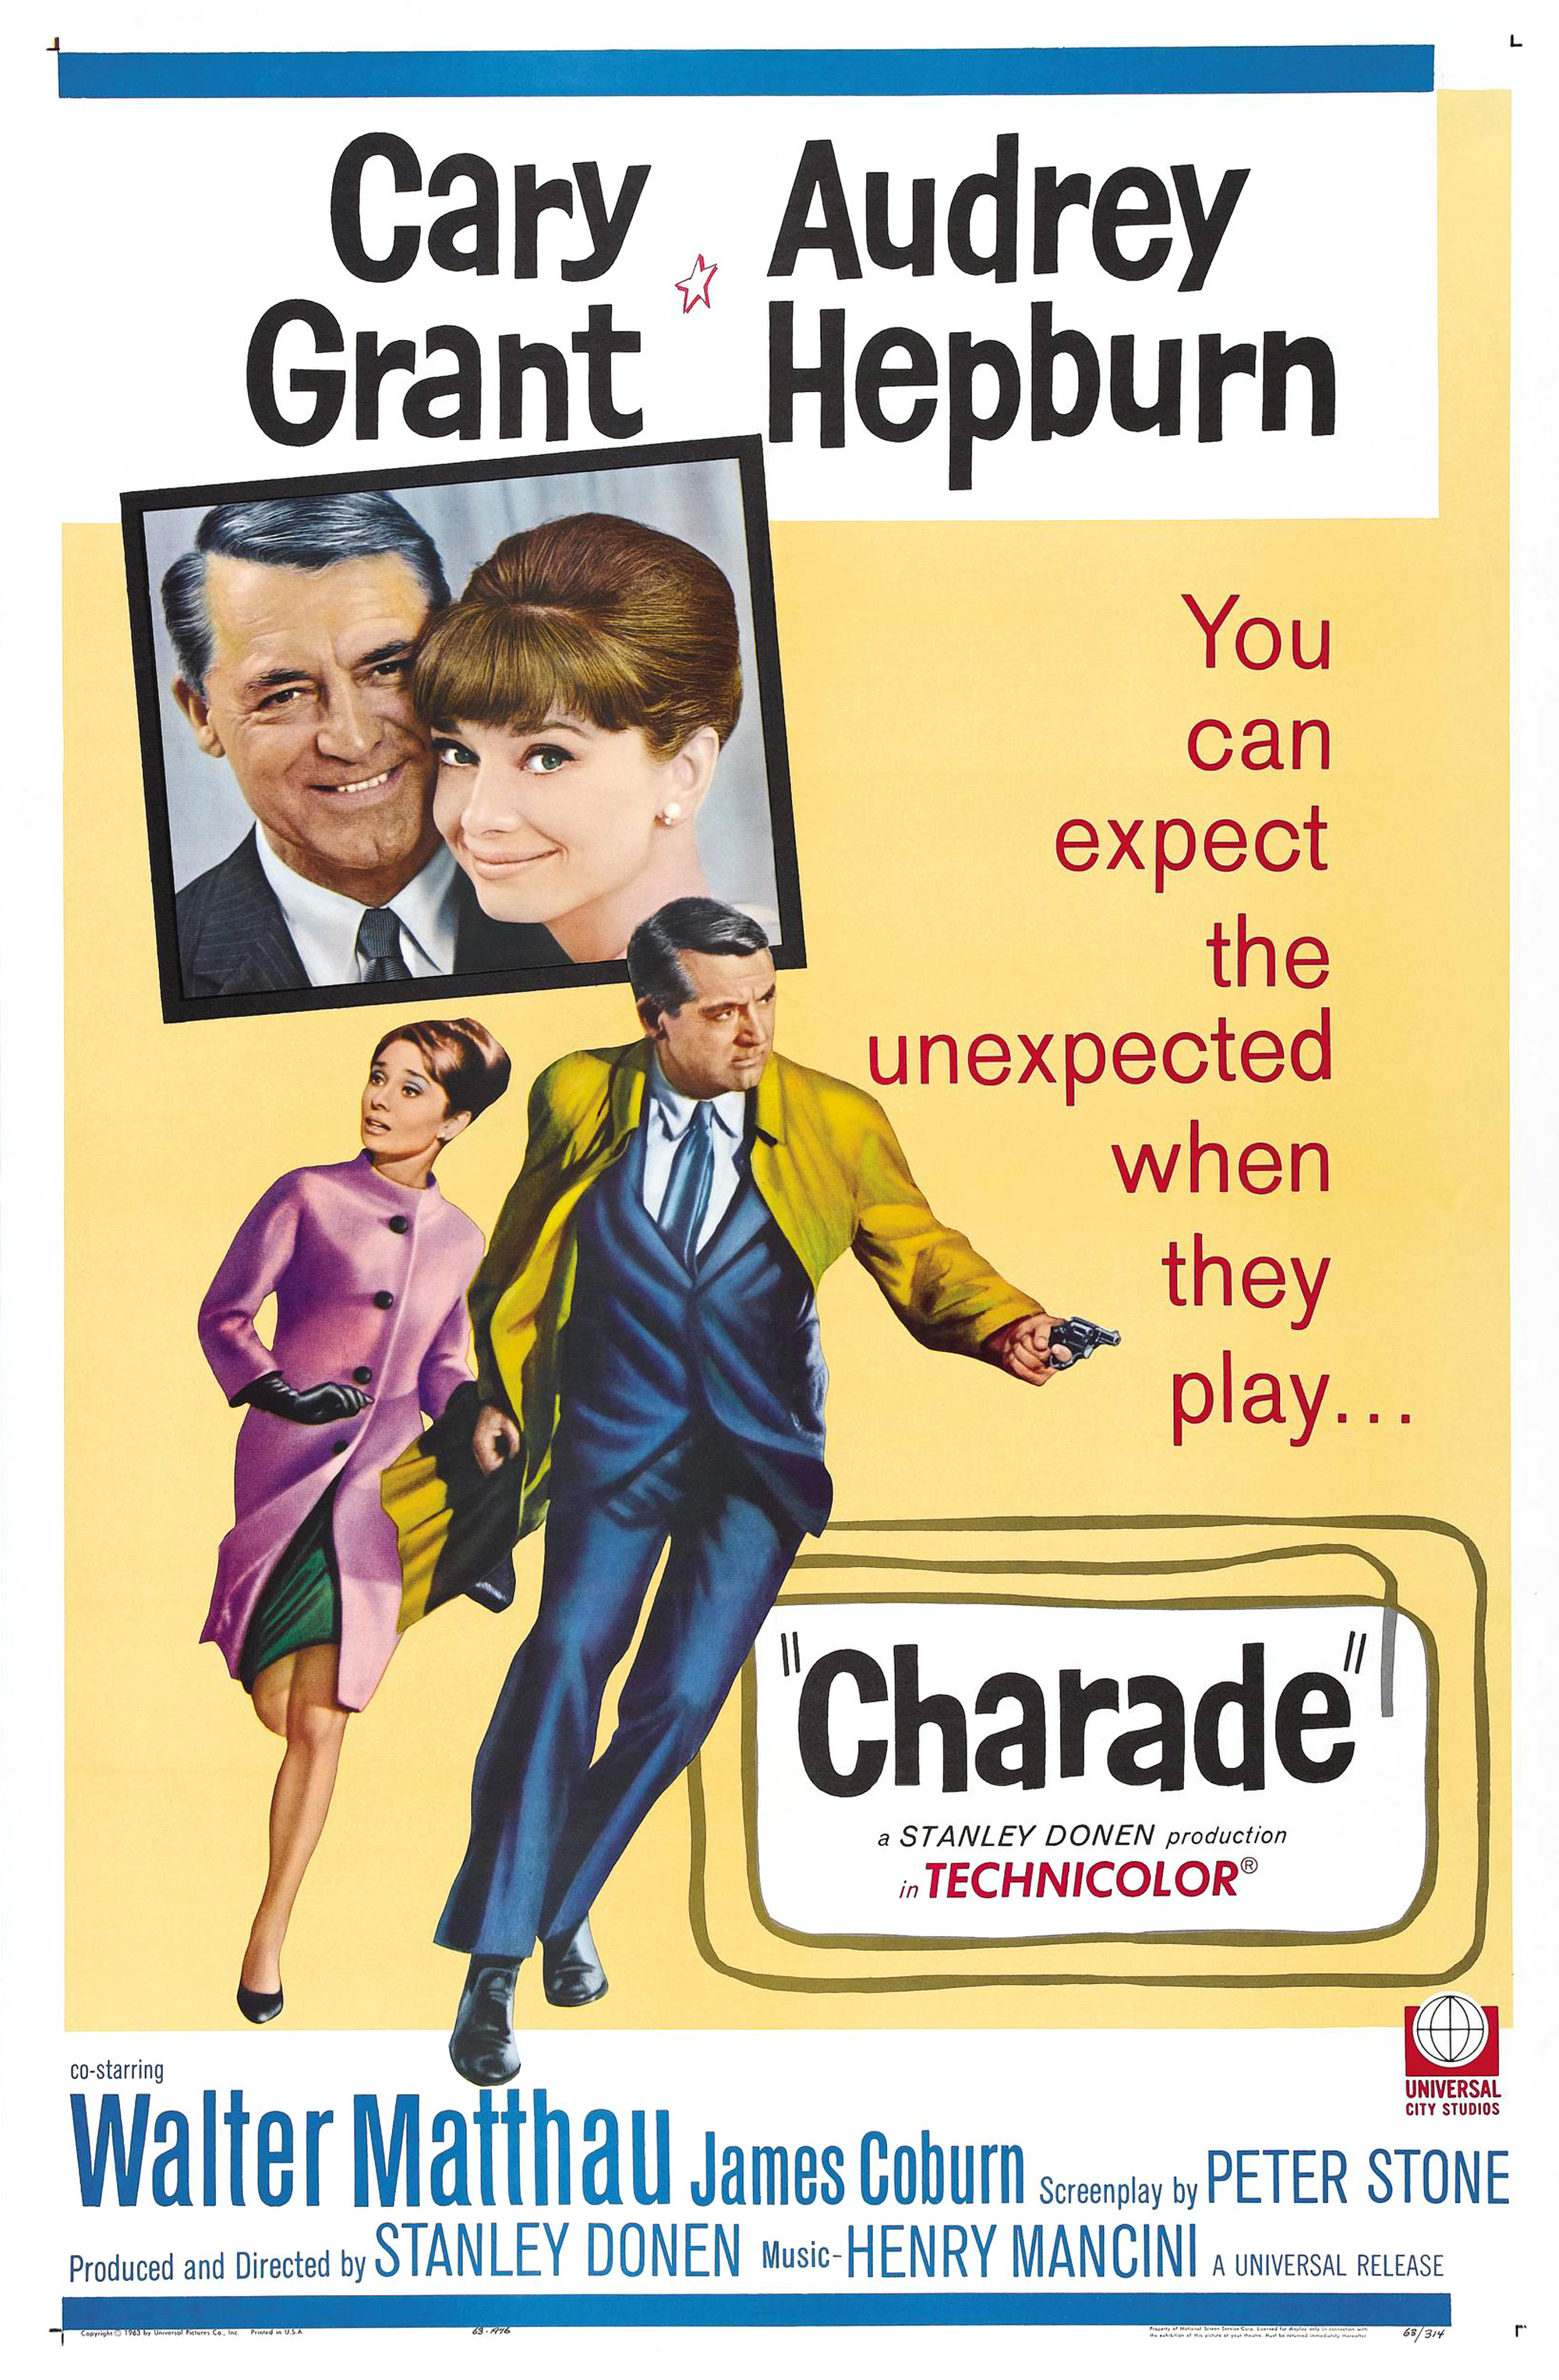 Audrey Hepburn, Charade (1963) starring Cary Grant | DVDbash